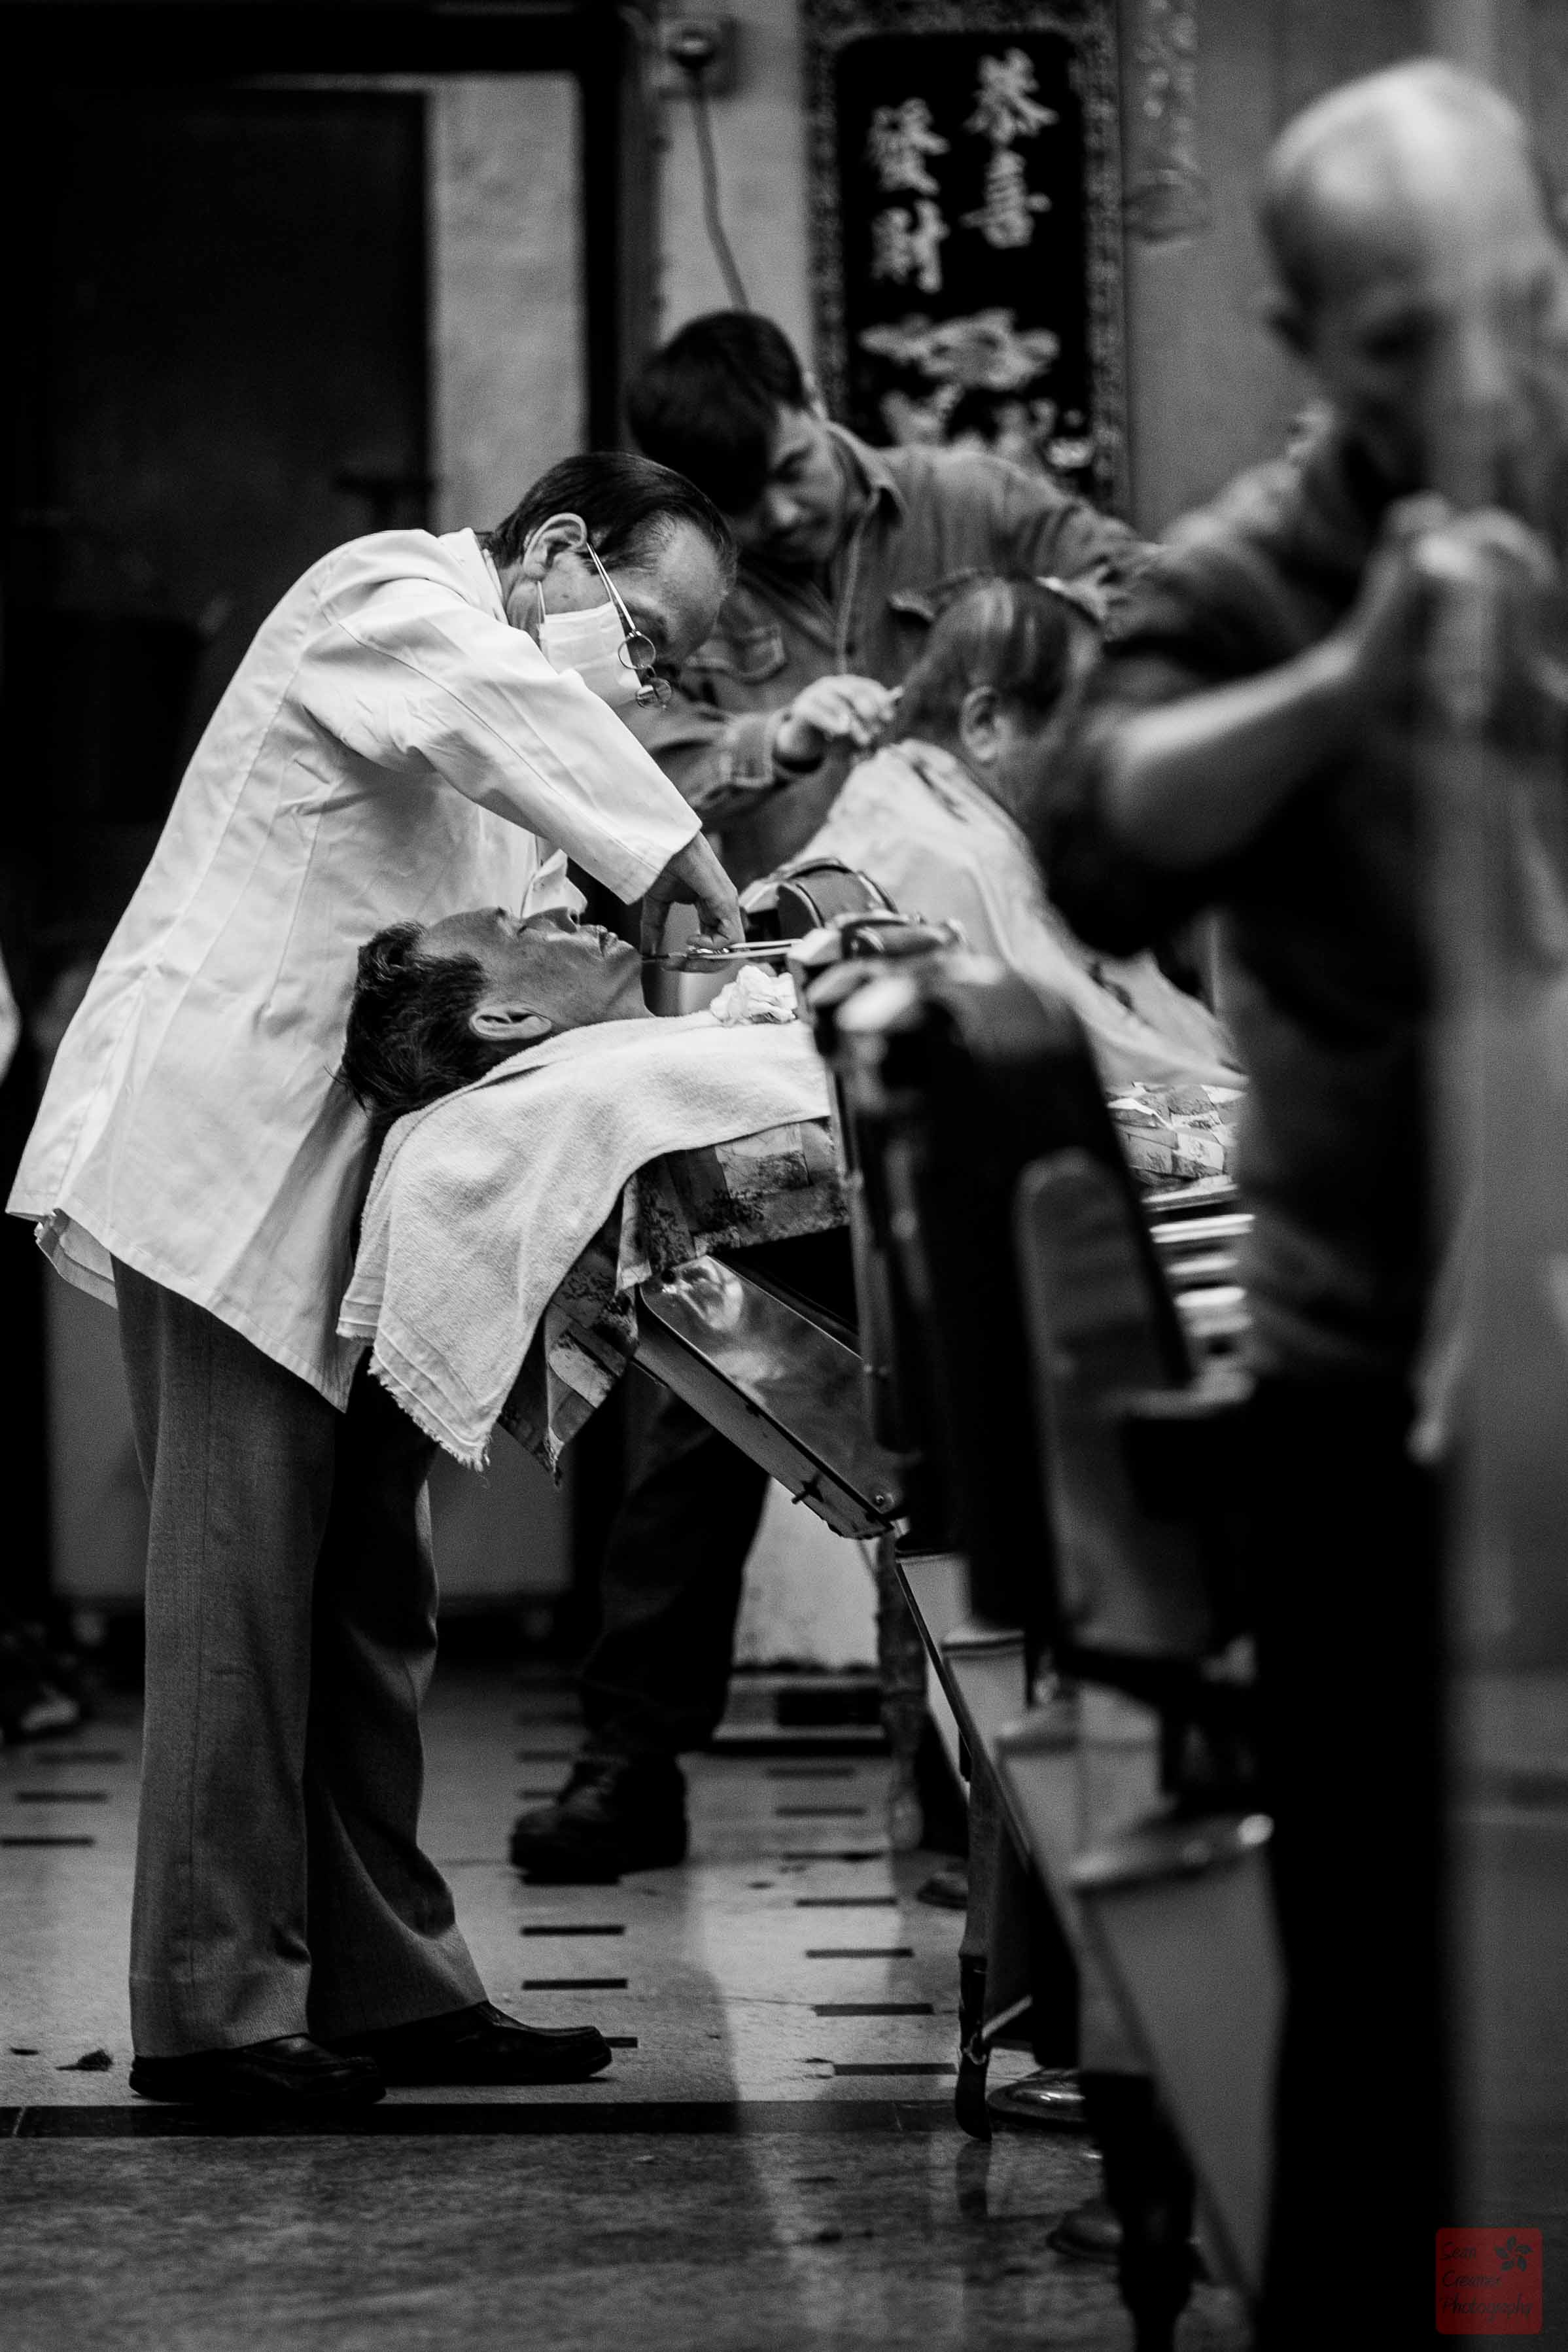 street SNAPS: The Barber Shop, part 2 | The Guest Room